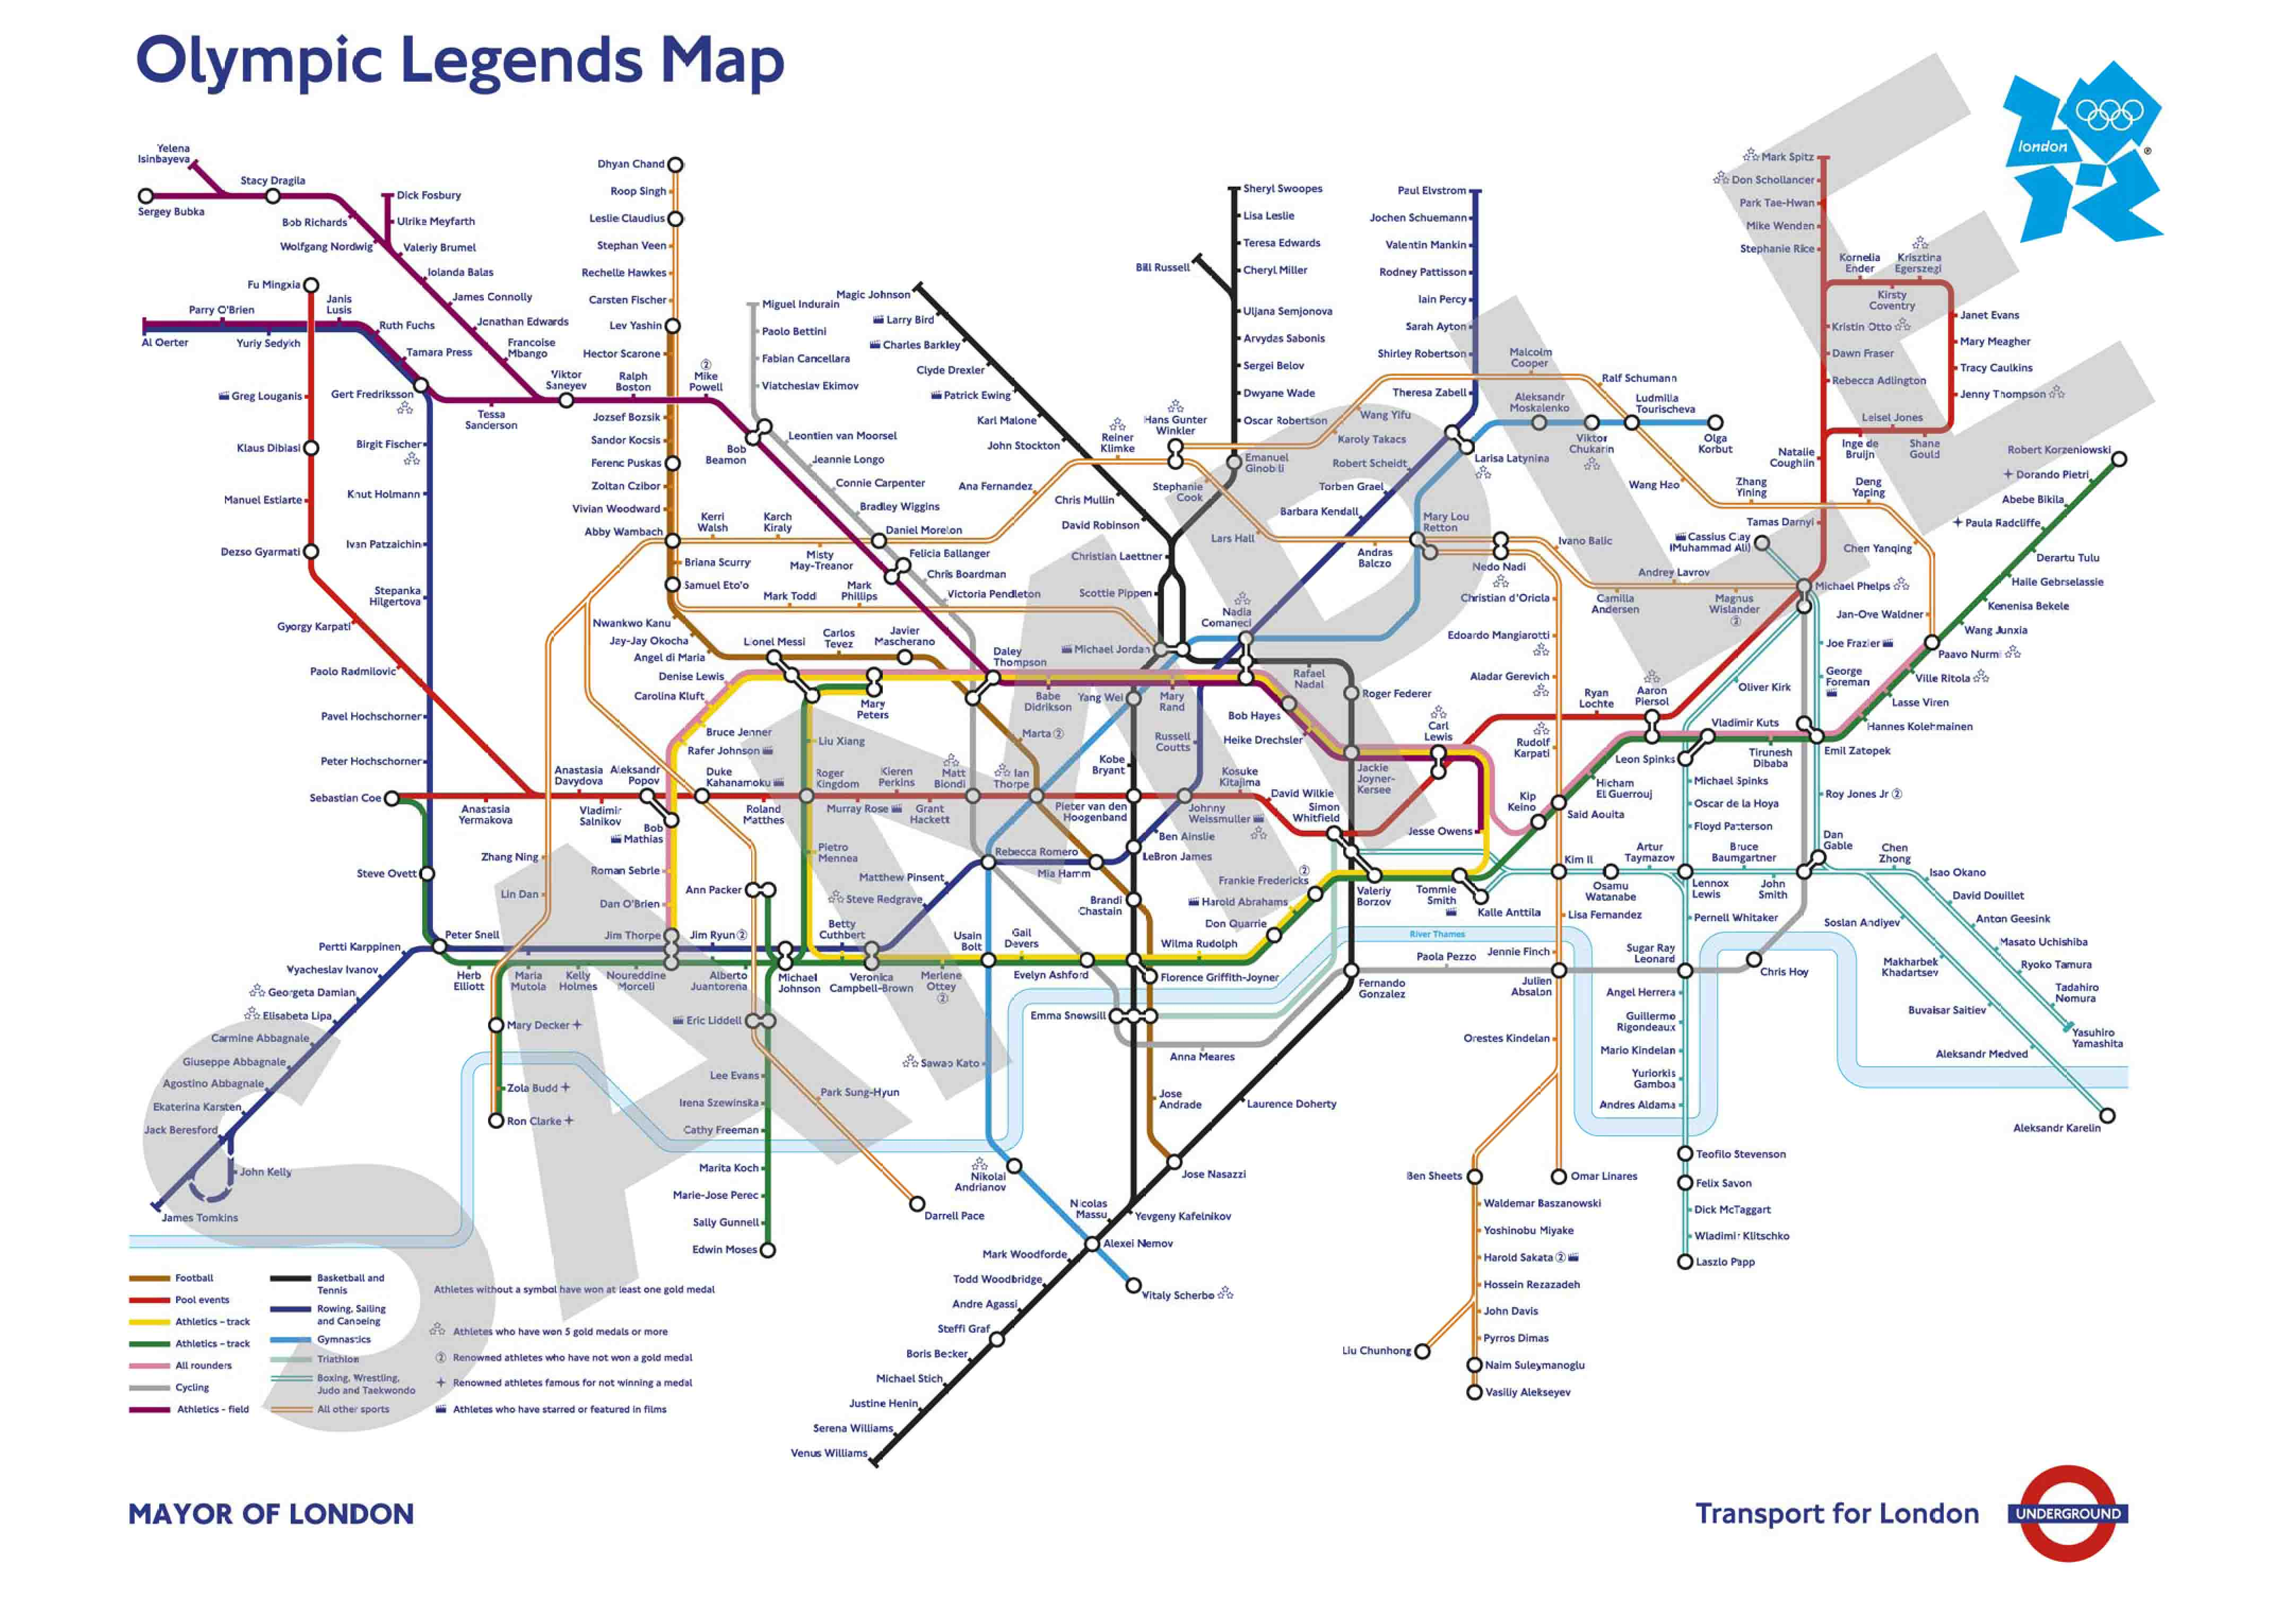 A thumbnail of the new London Tube station map